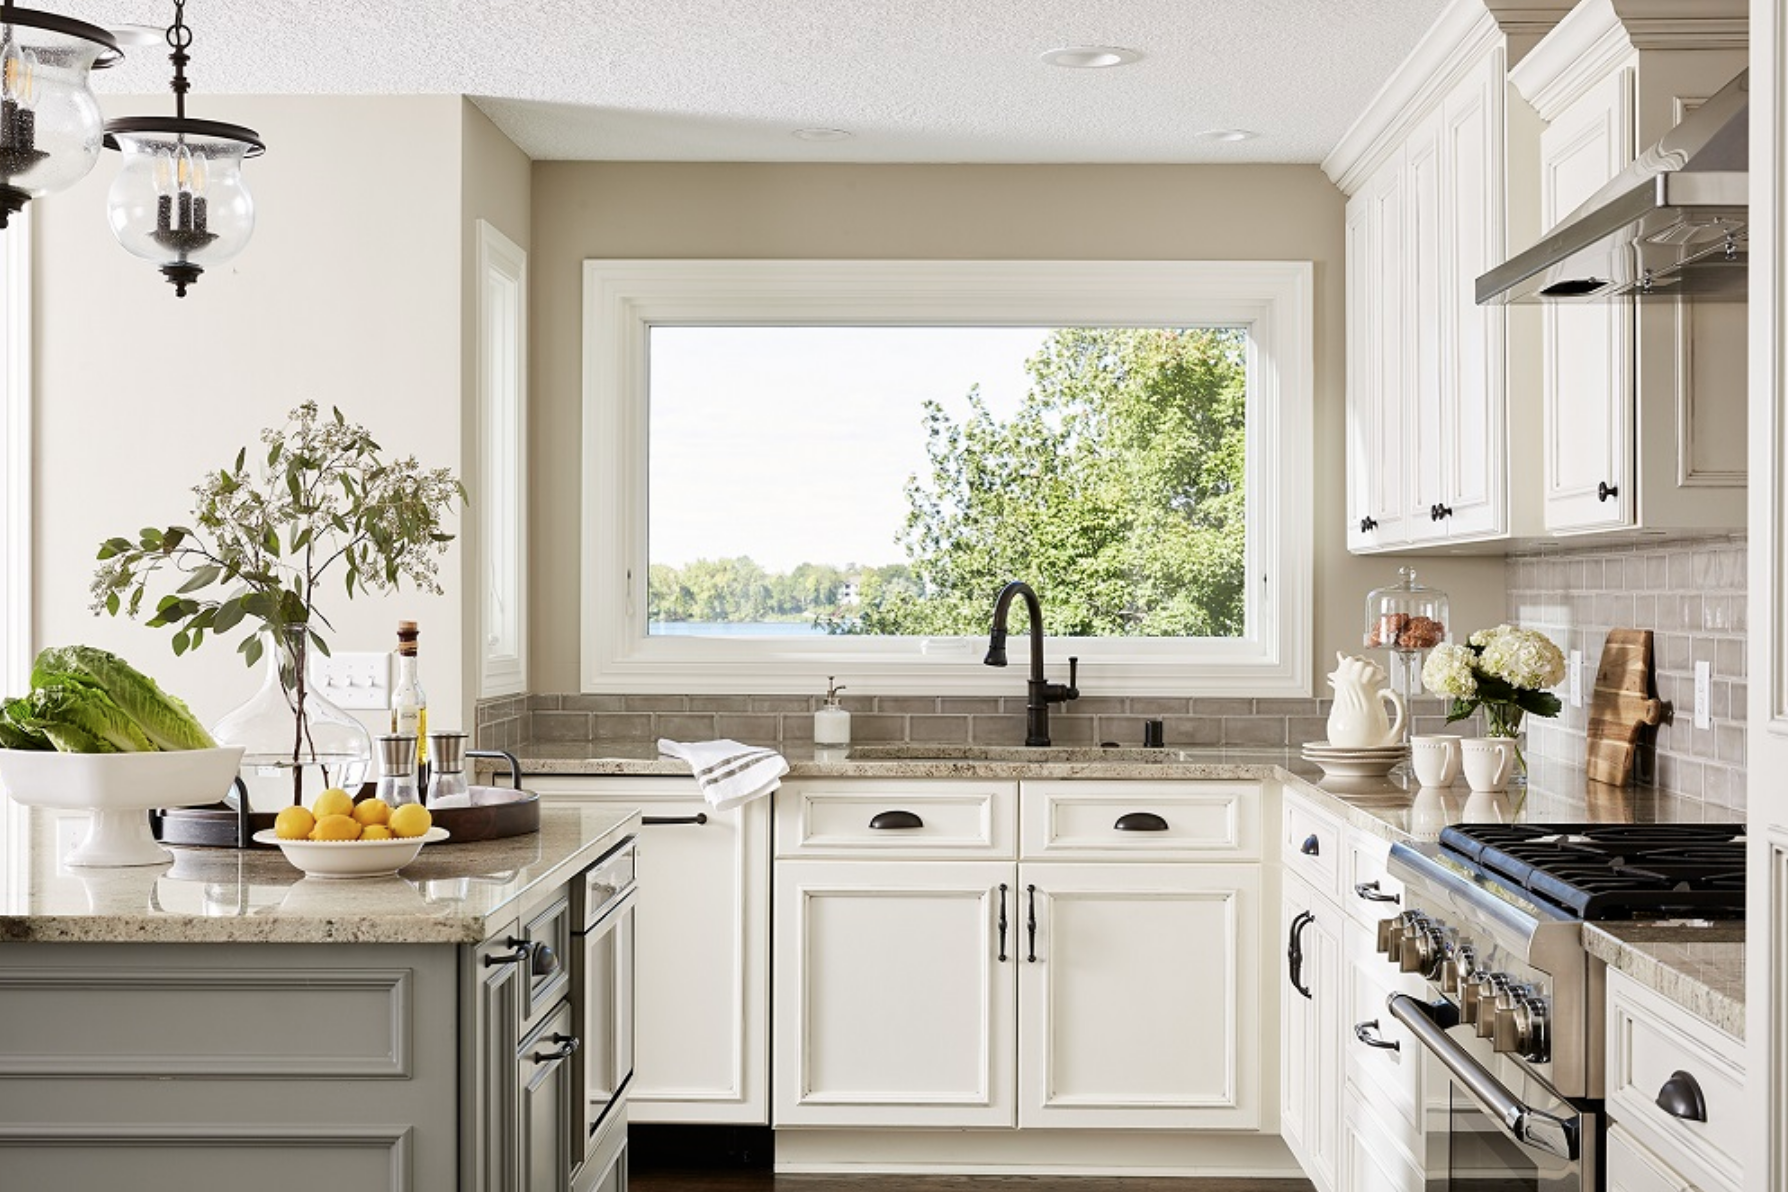 Touches of warm grey and soft white throughout this kitchen paired perfectly with the oil-rubbed bronze finishes for a streamlined and classic aesthetic.